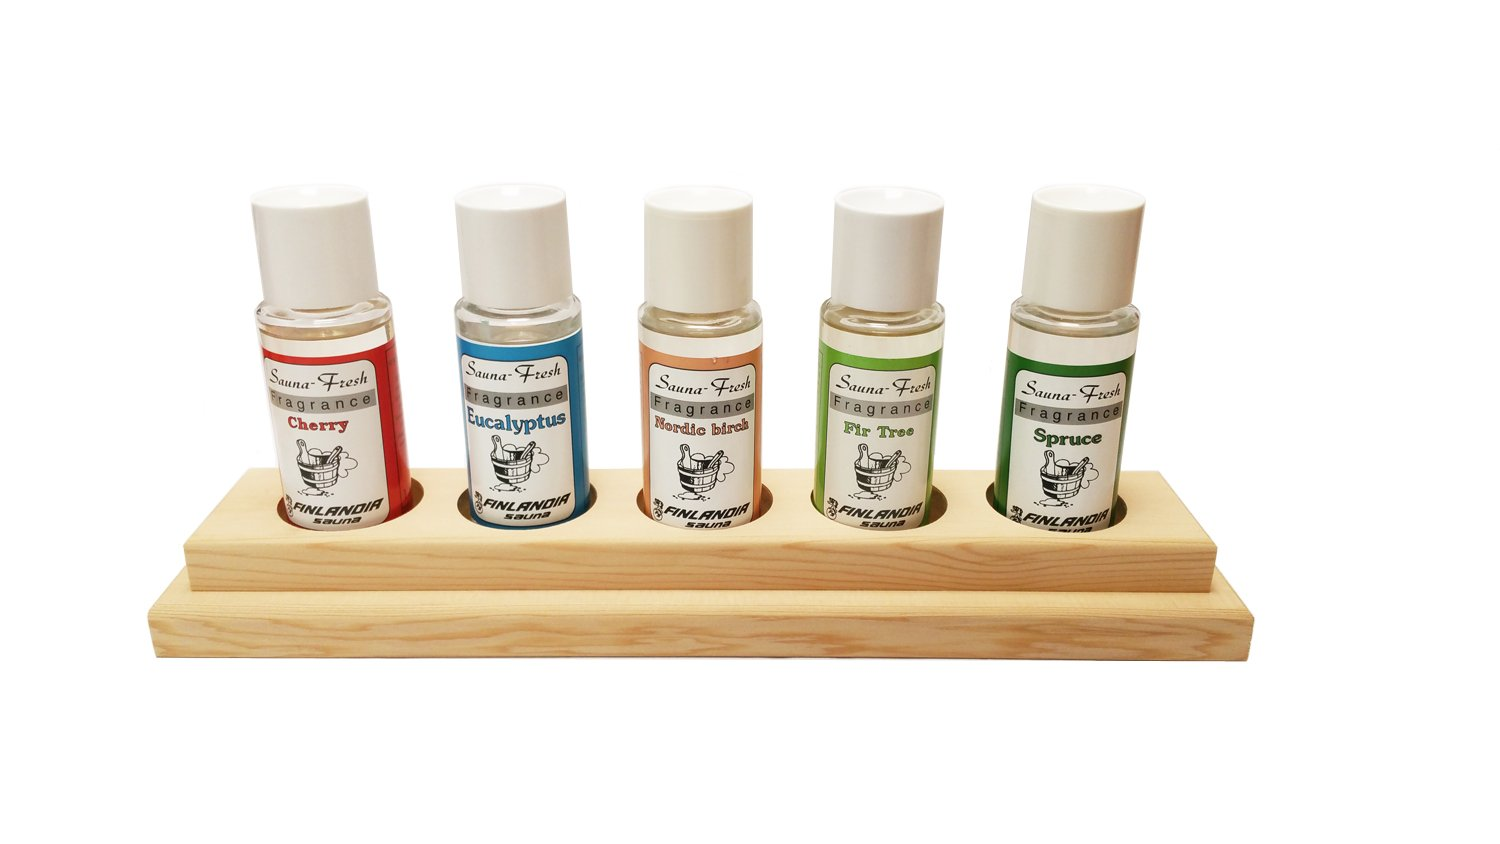 finlandia Sauna Fresh Aroma 5 pack with Cedar Holder, 1.8oz pure essence oil each by finlandia